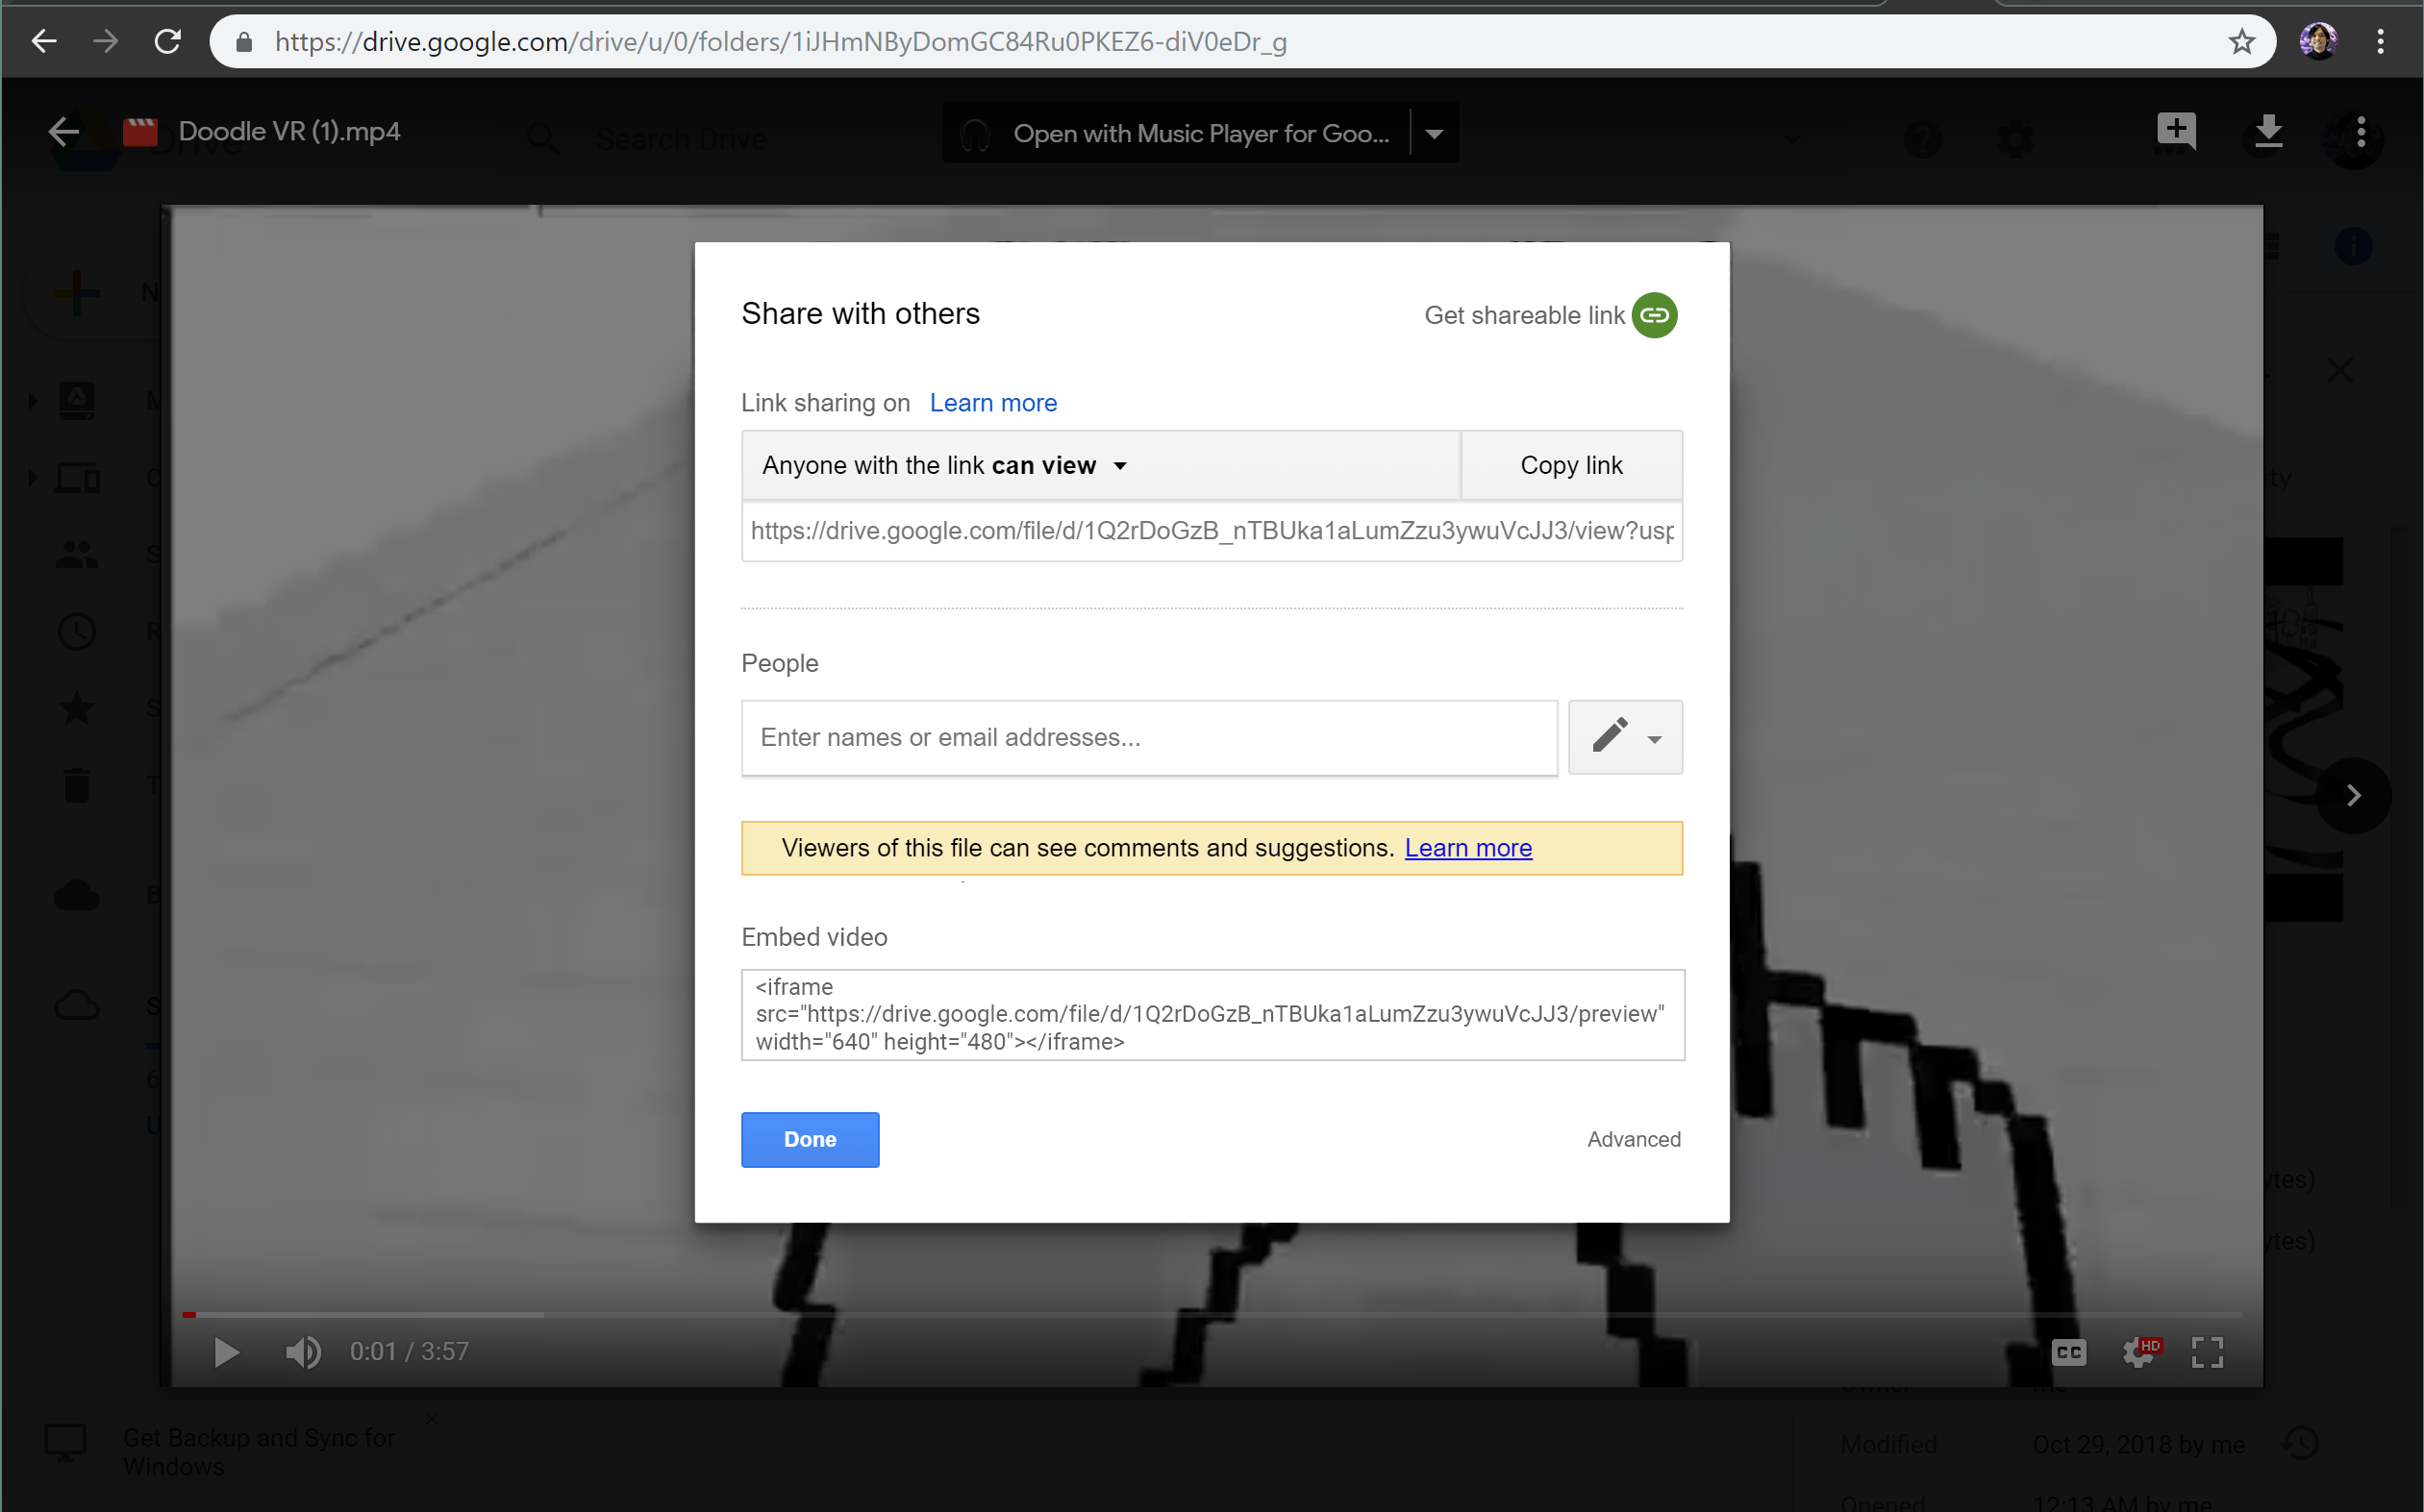 Mini Case Study: A Quest to Find The Hidden Embed Video Link